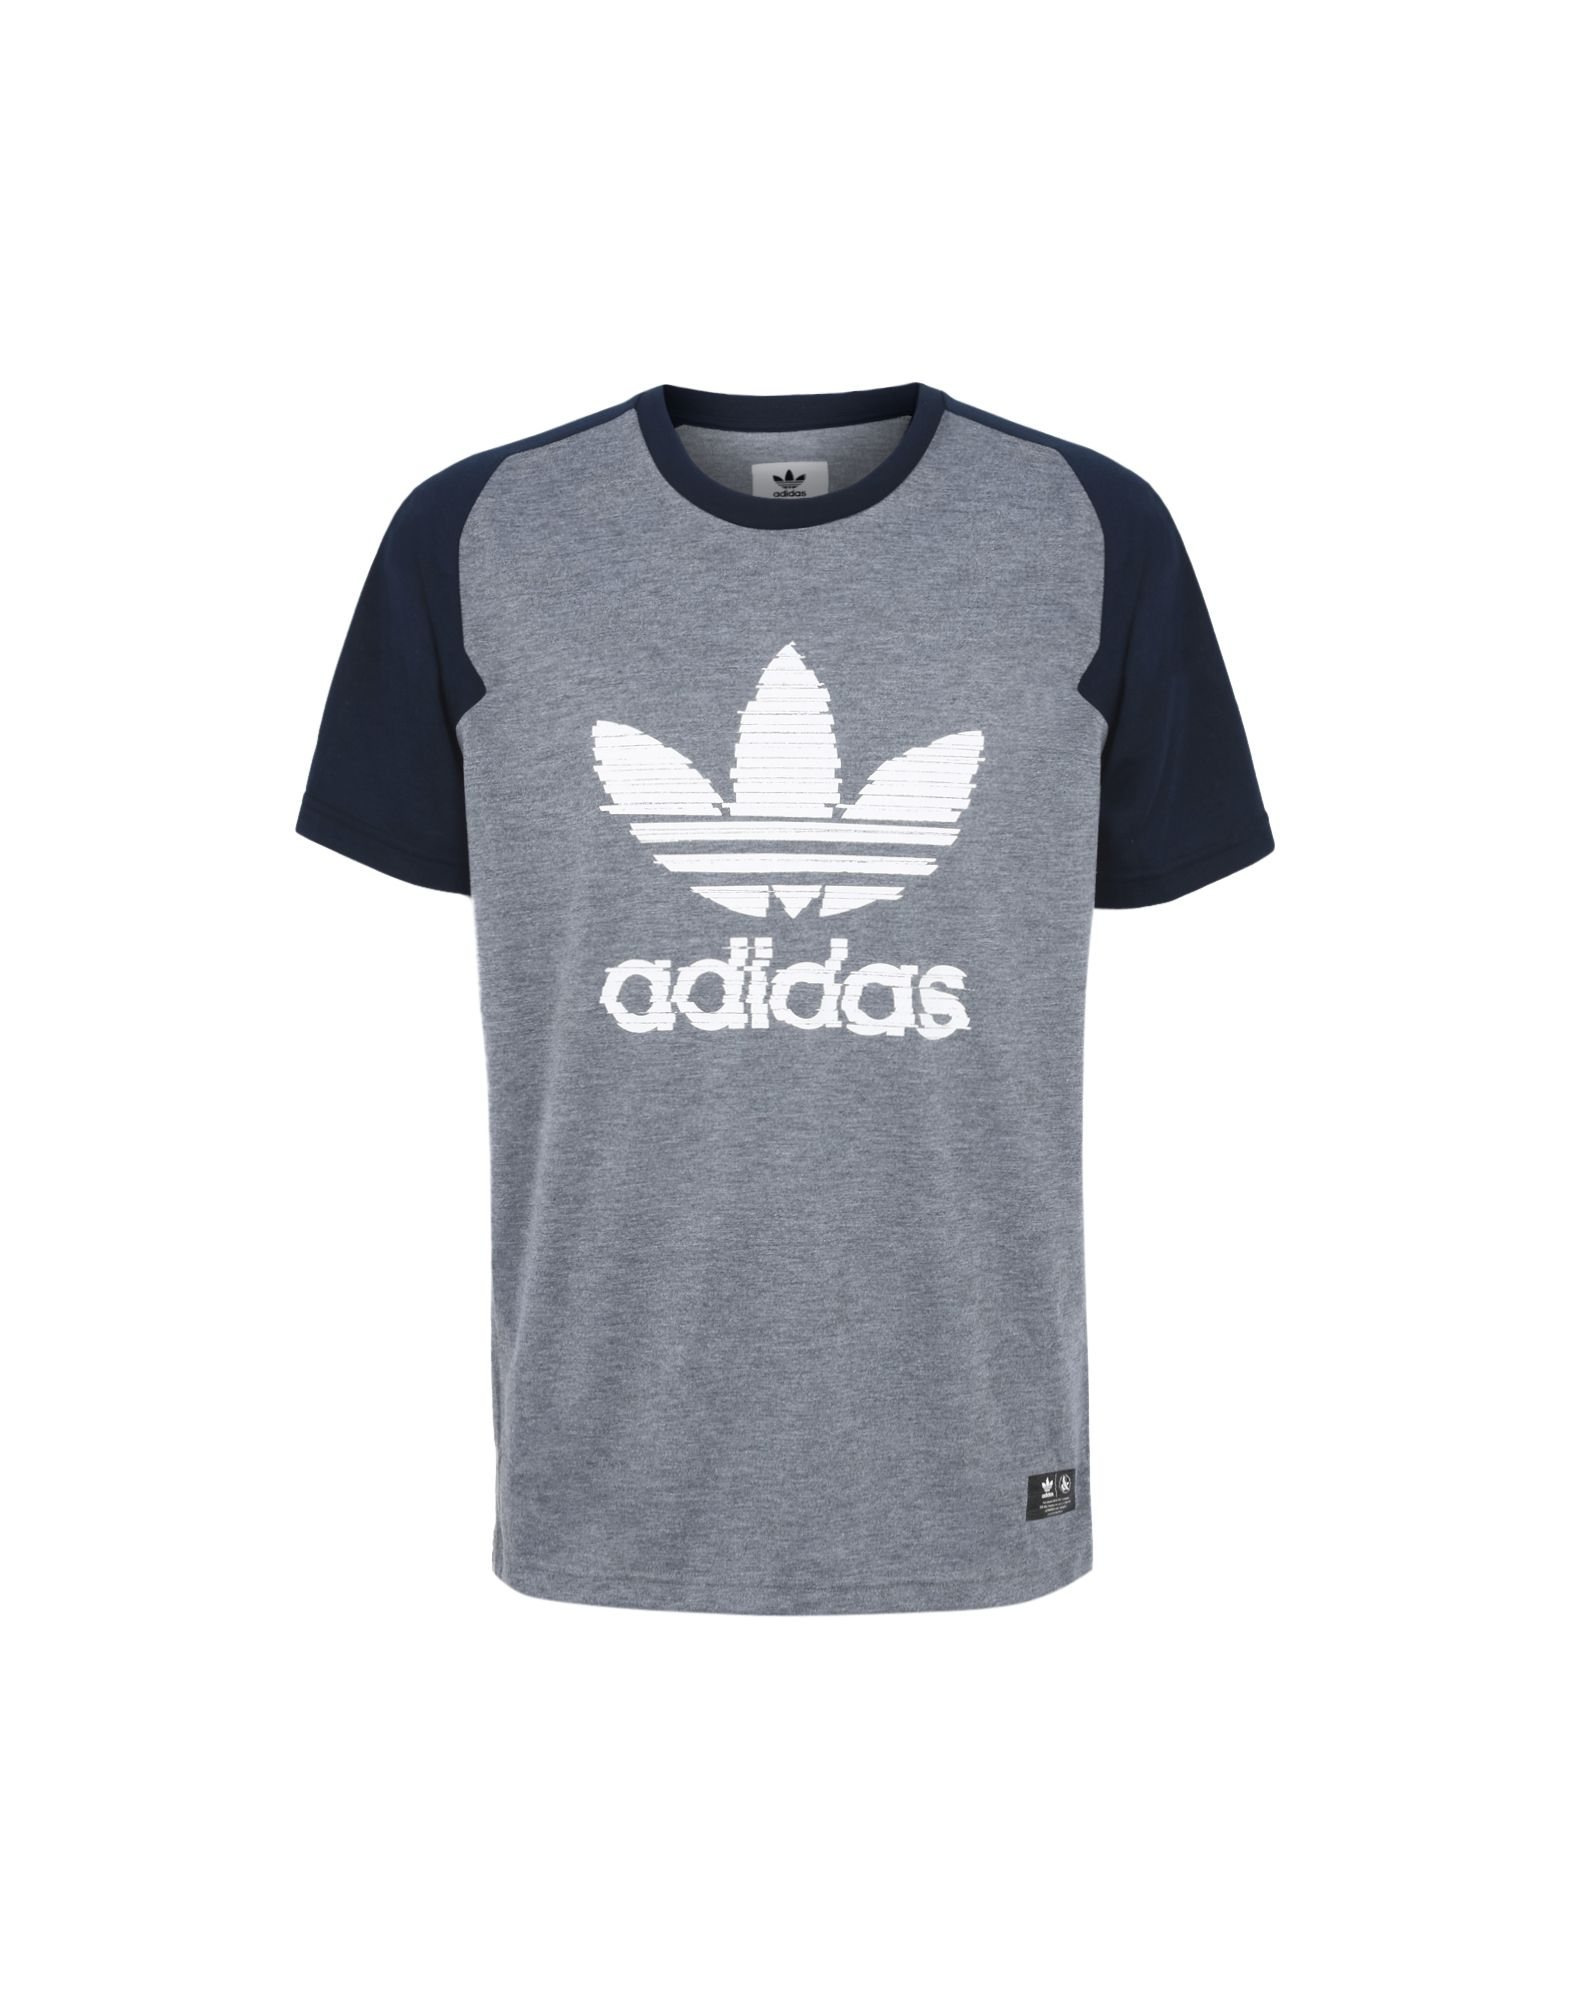 ADIDAS ORIGINALS by UNITED ARROWS & SONS Футболка